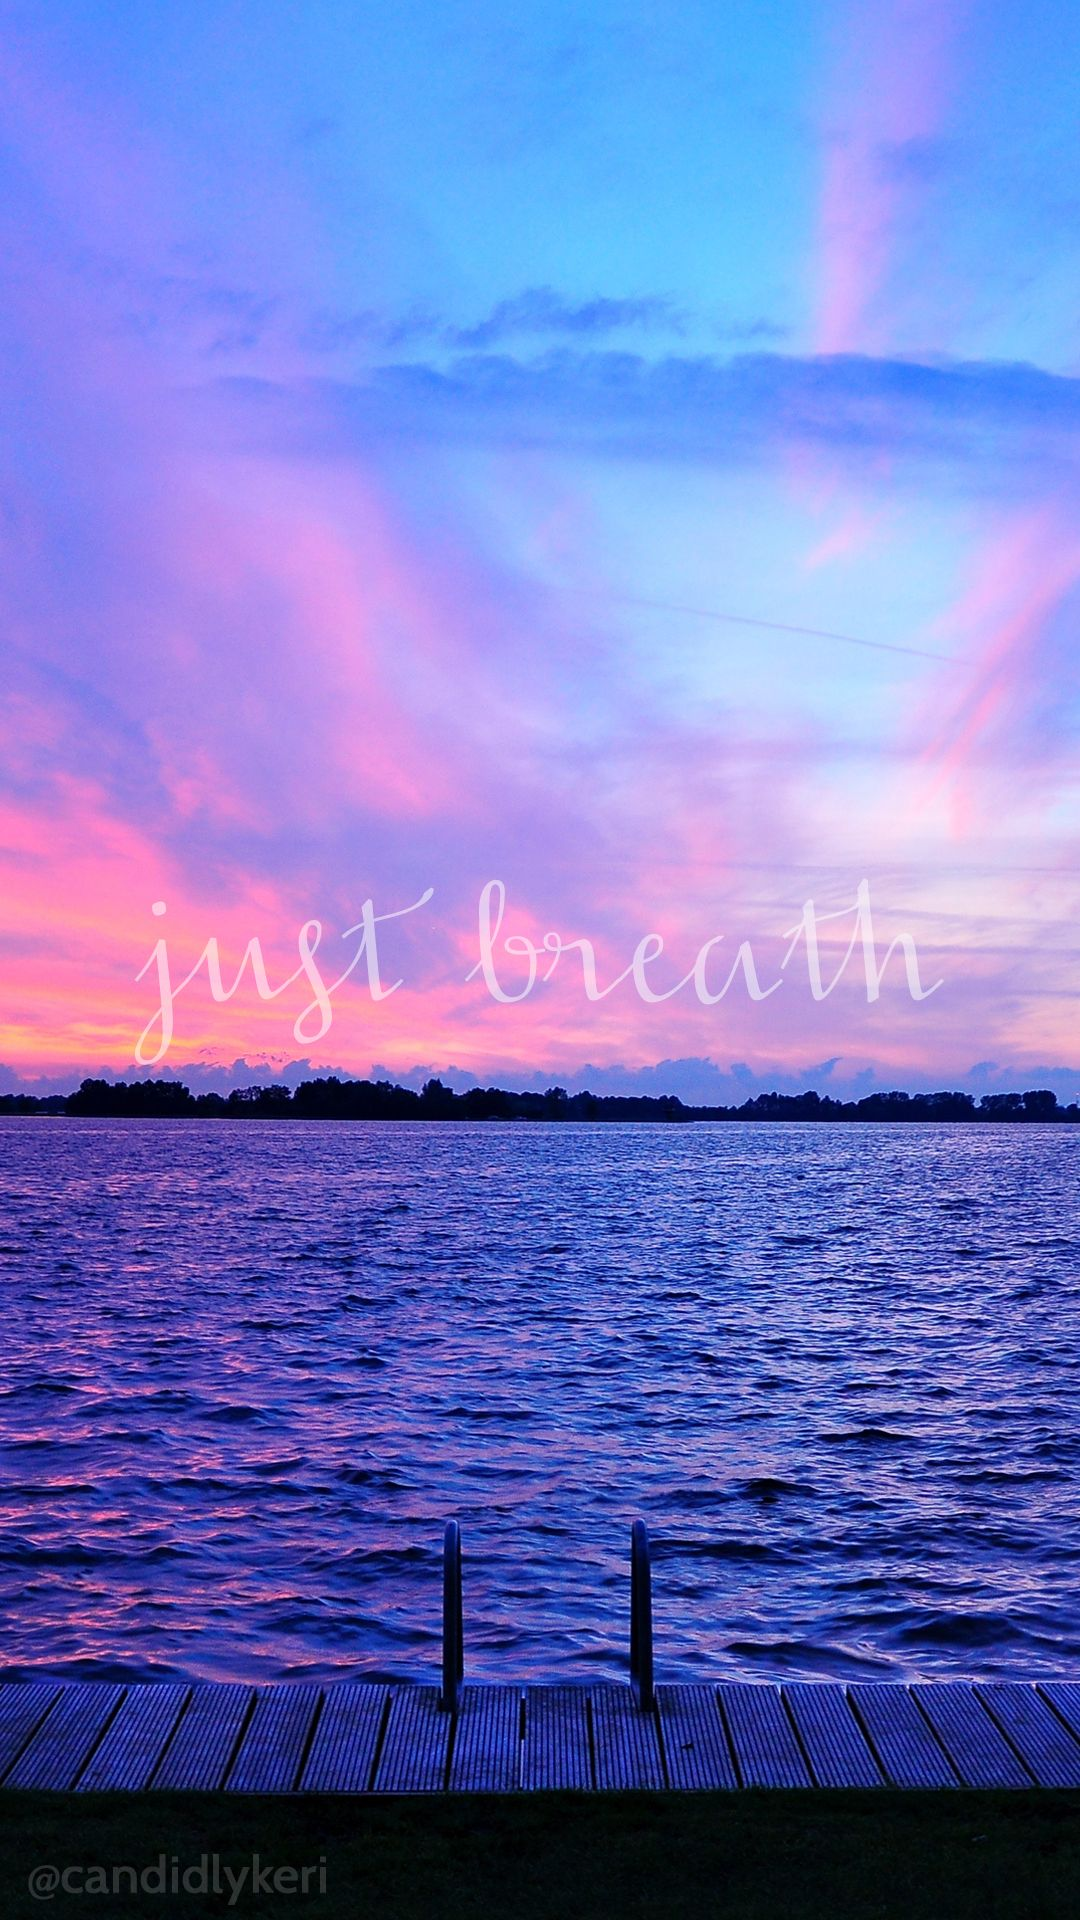 Just Breathe sunset ocean view pink and purple sky